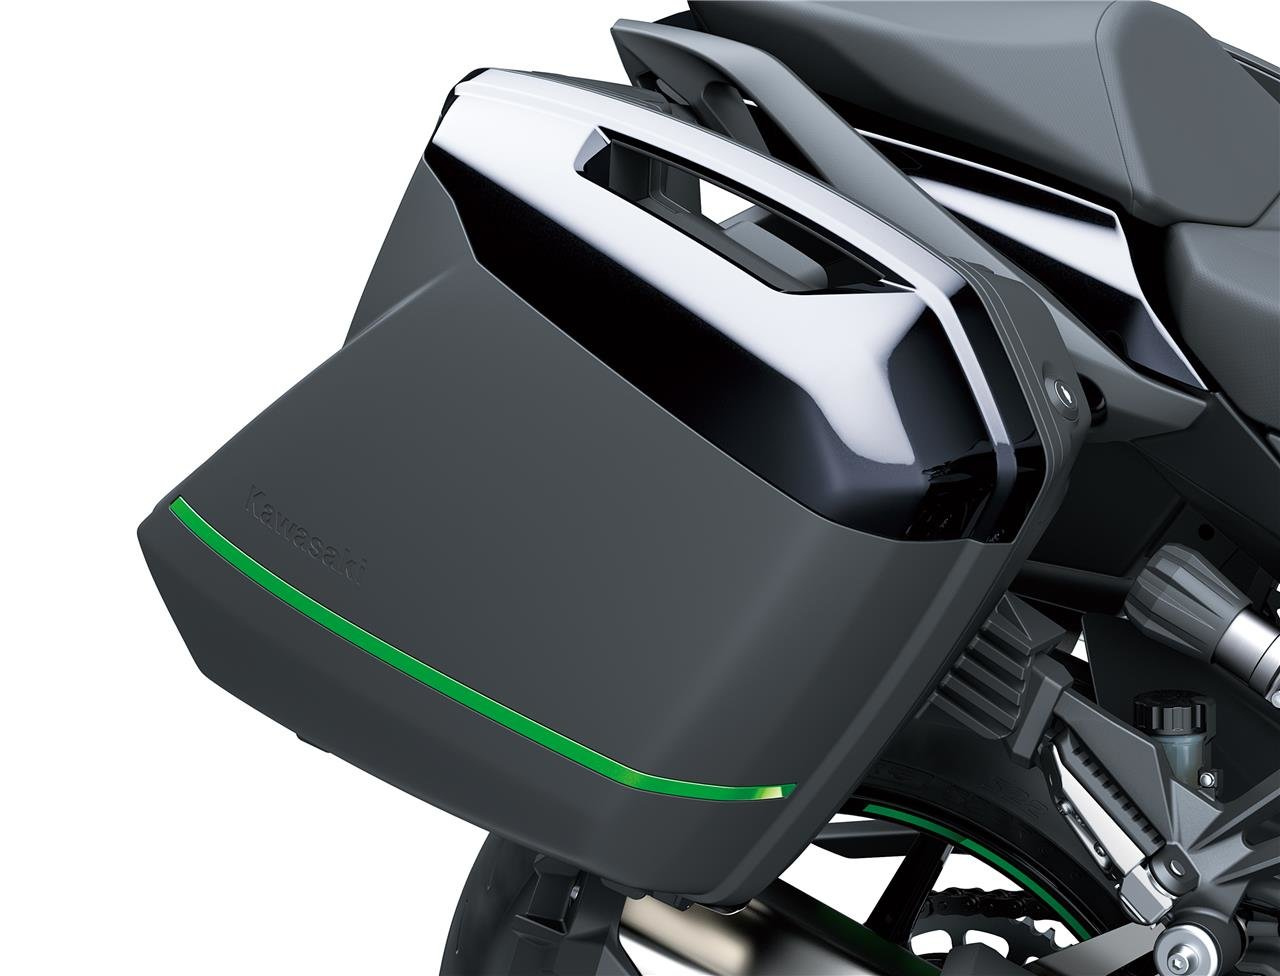 New 2020 Kawasaki Ninja 1000 SX TOURER**FREE DELIVERY** For Sale (picture 3 of 6)